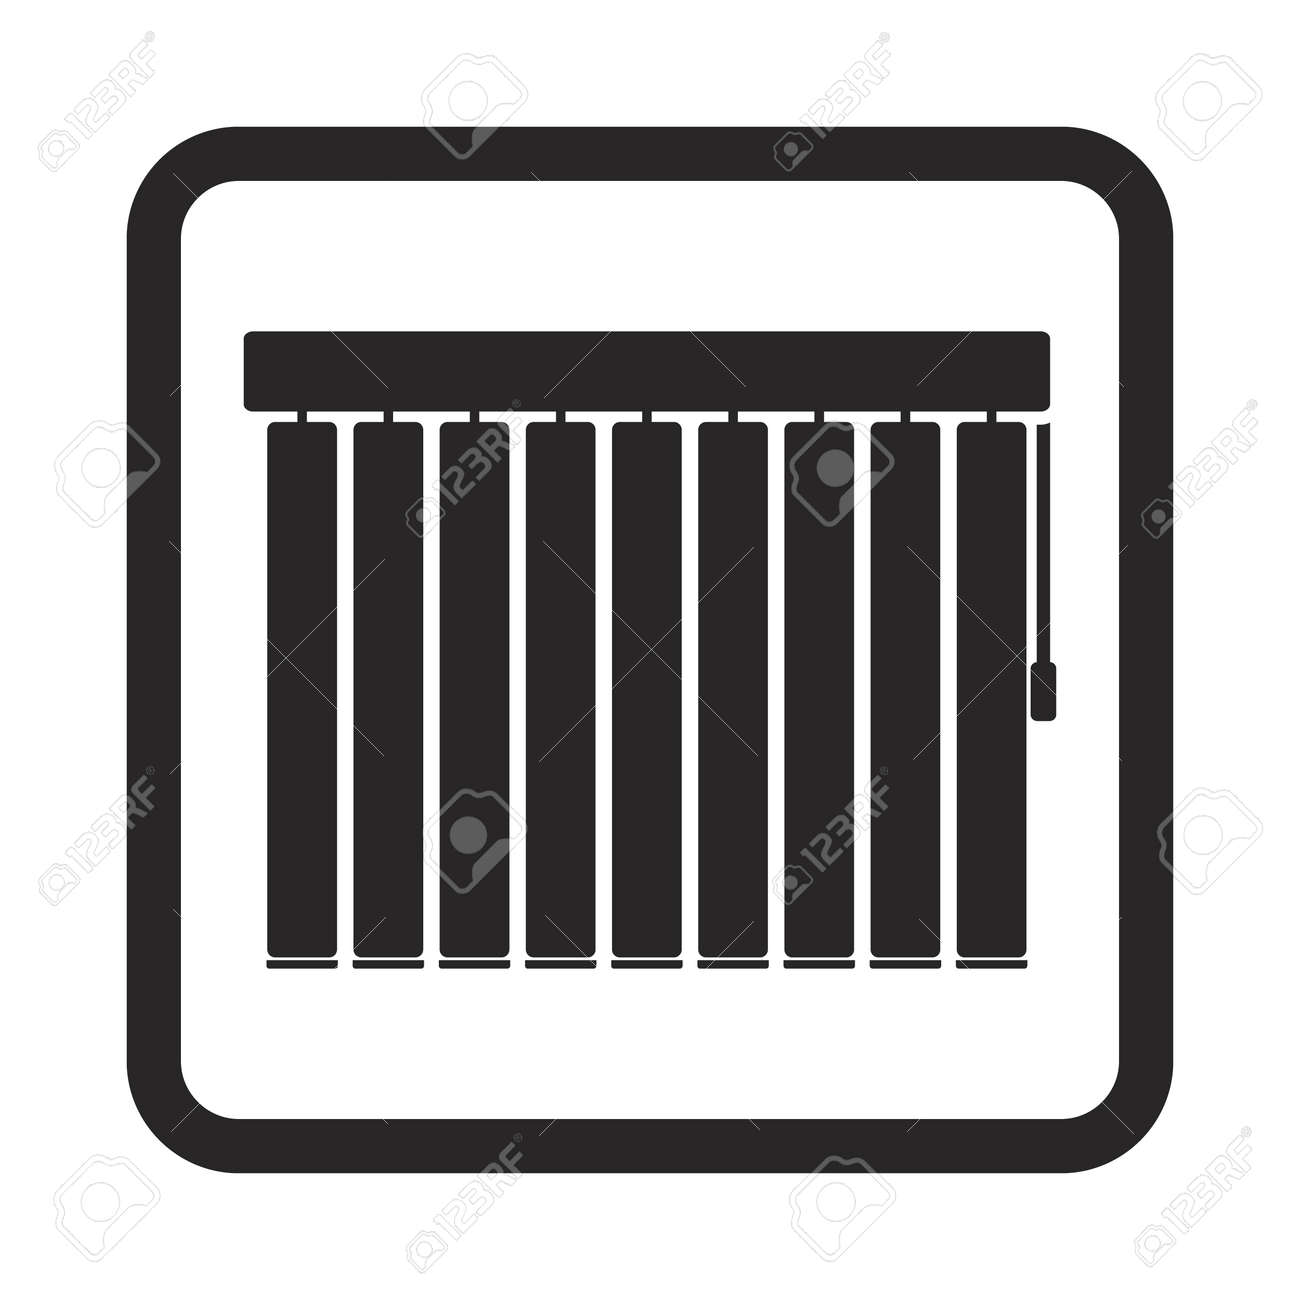 Jalousie Icon Royalty Free Cliparts, Vectors, And Stock Illustration ...